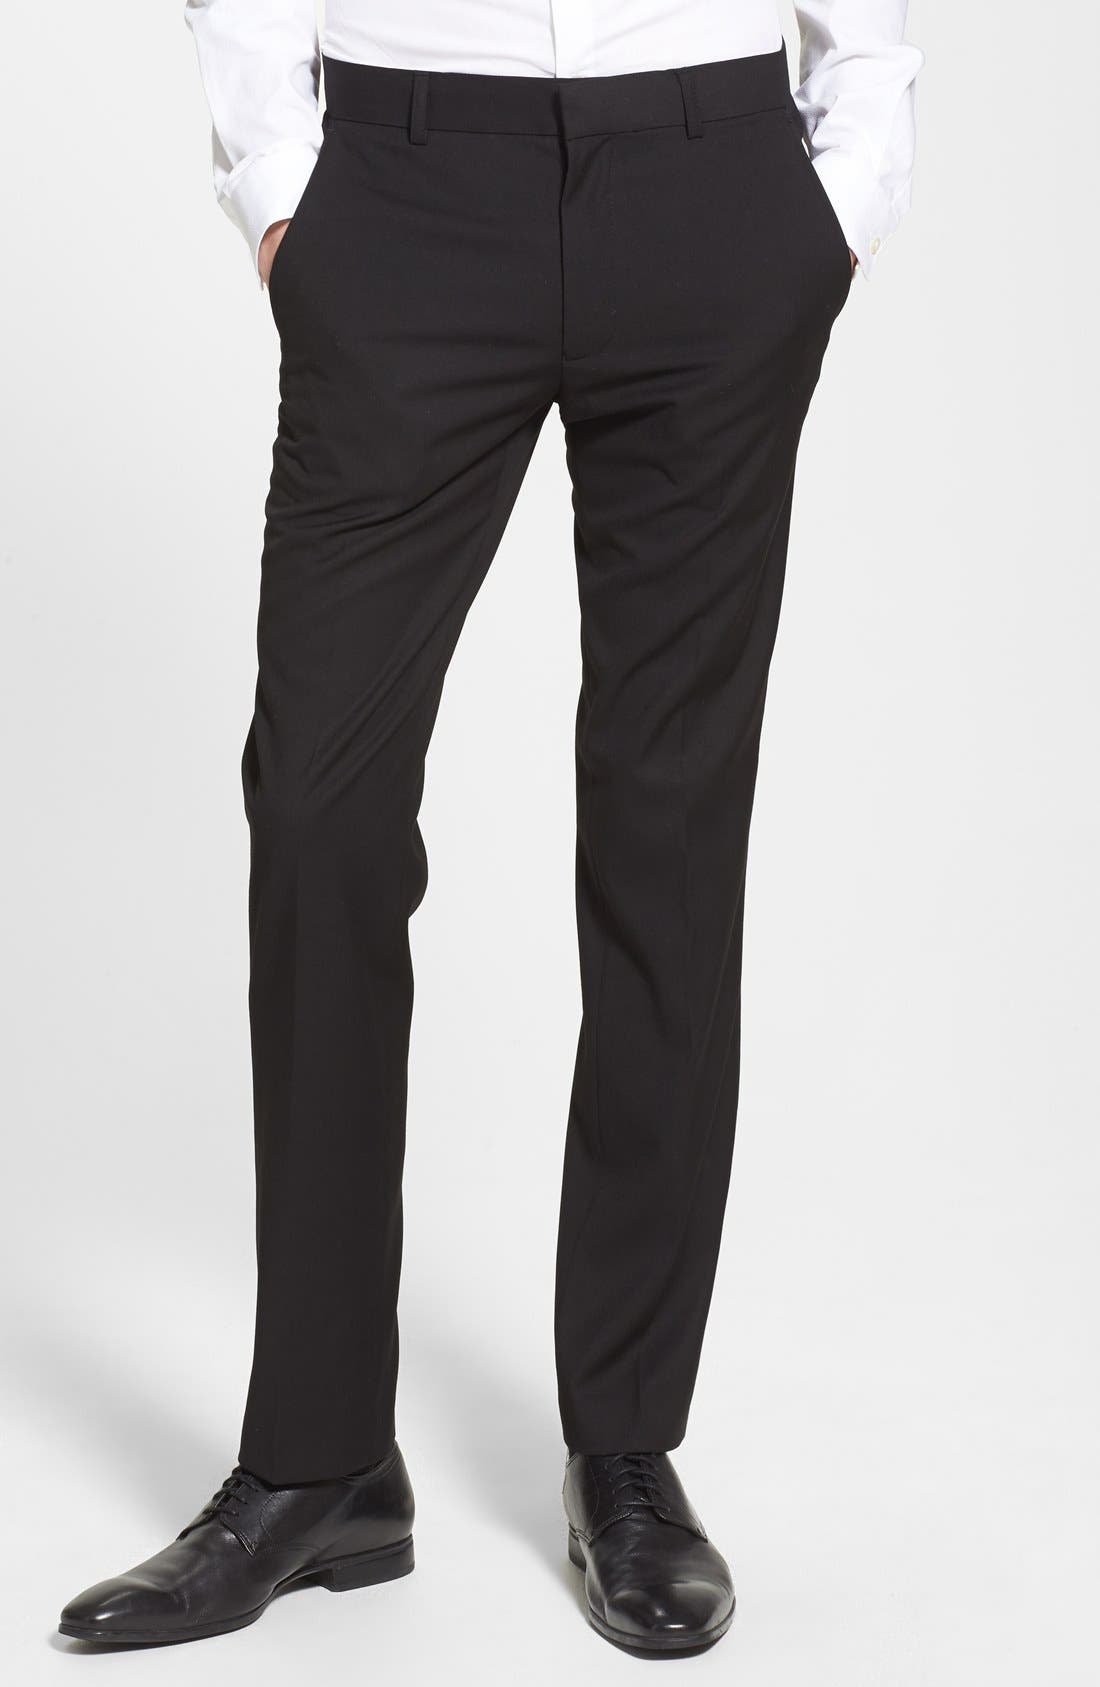 Main Image - Topman Black Textured Skinny Fit Flat Front Trousers